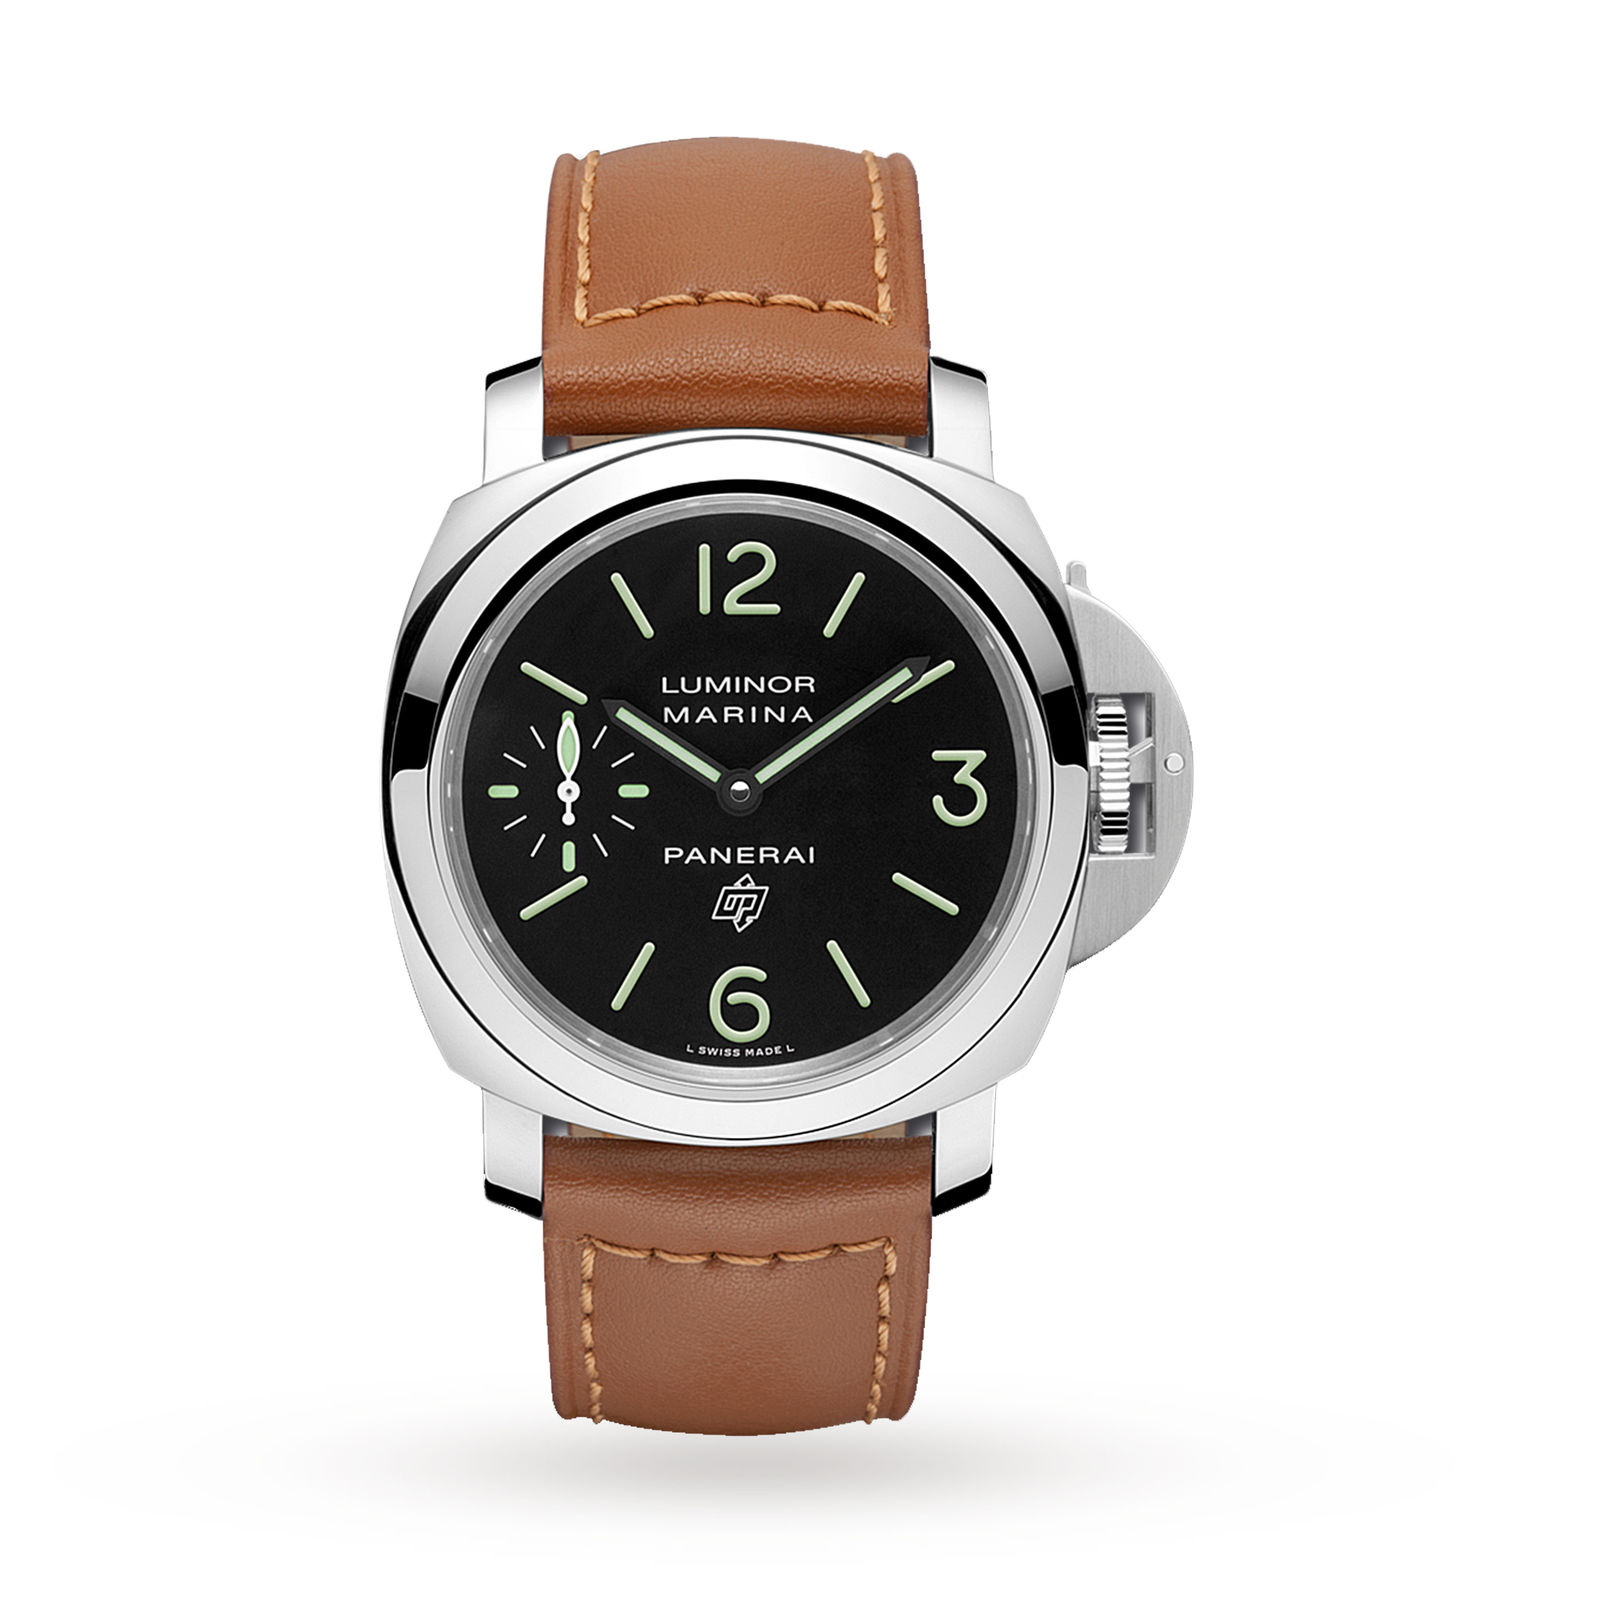 blue panerai news edition luxois dial watches special